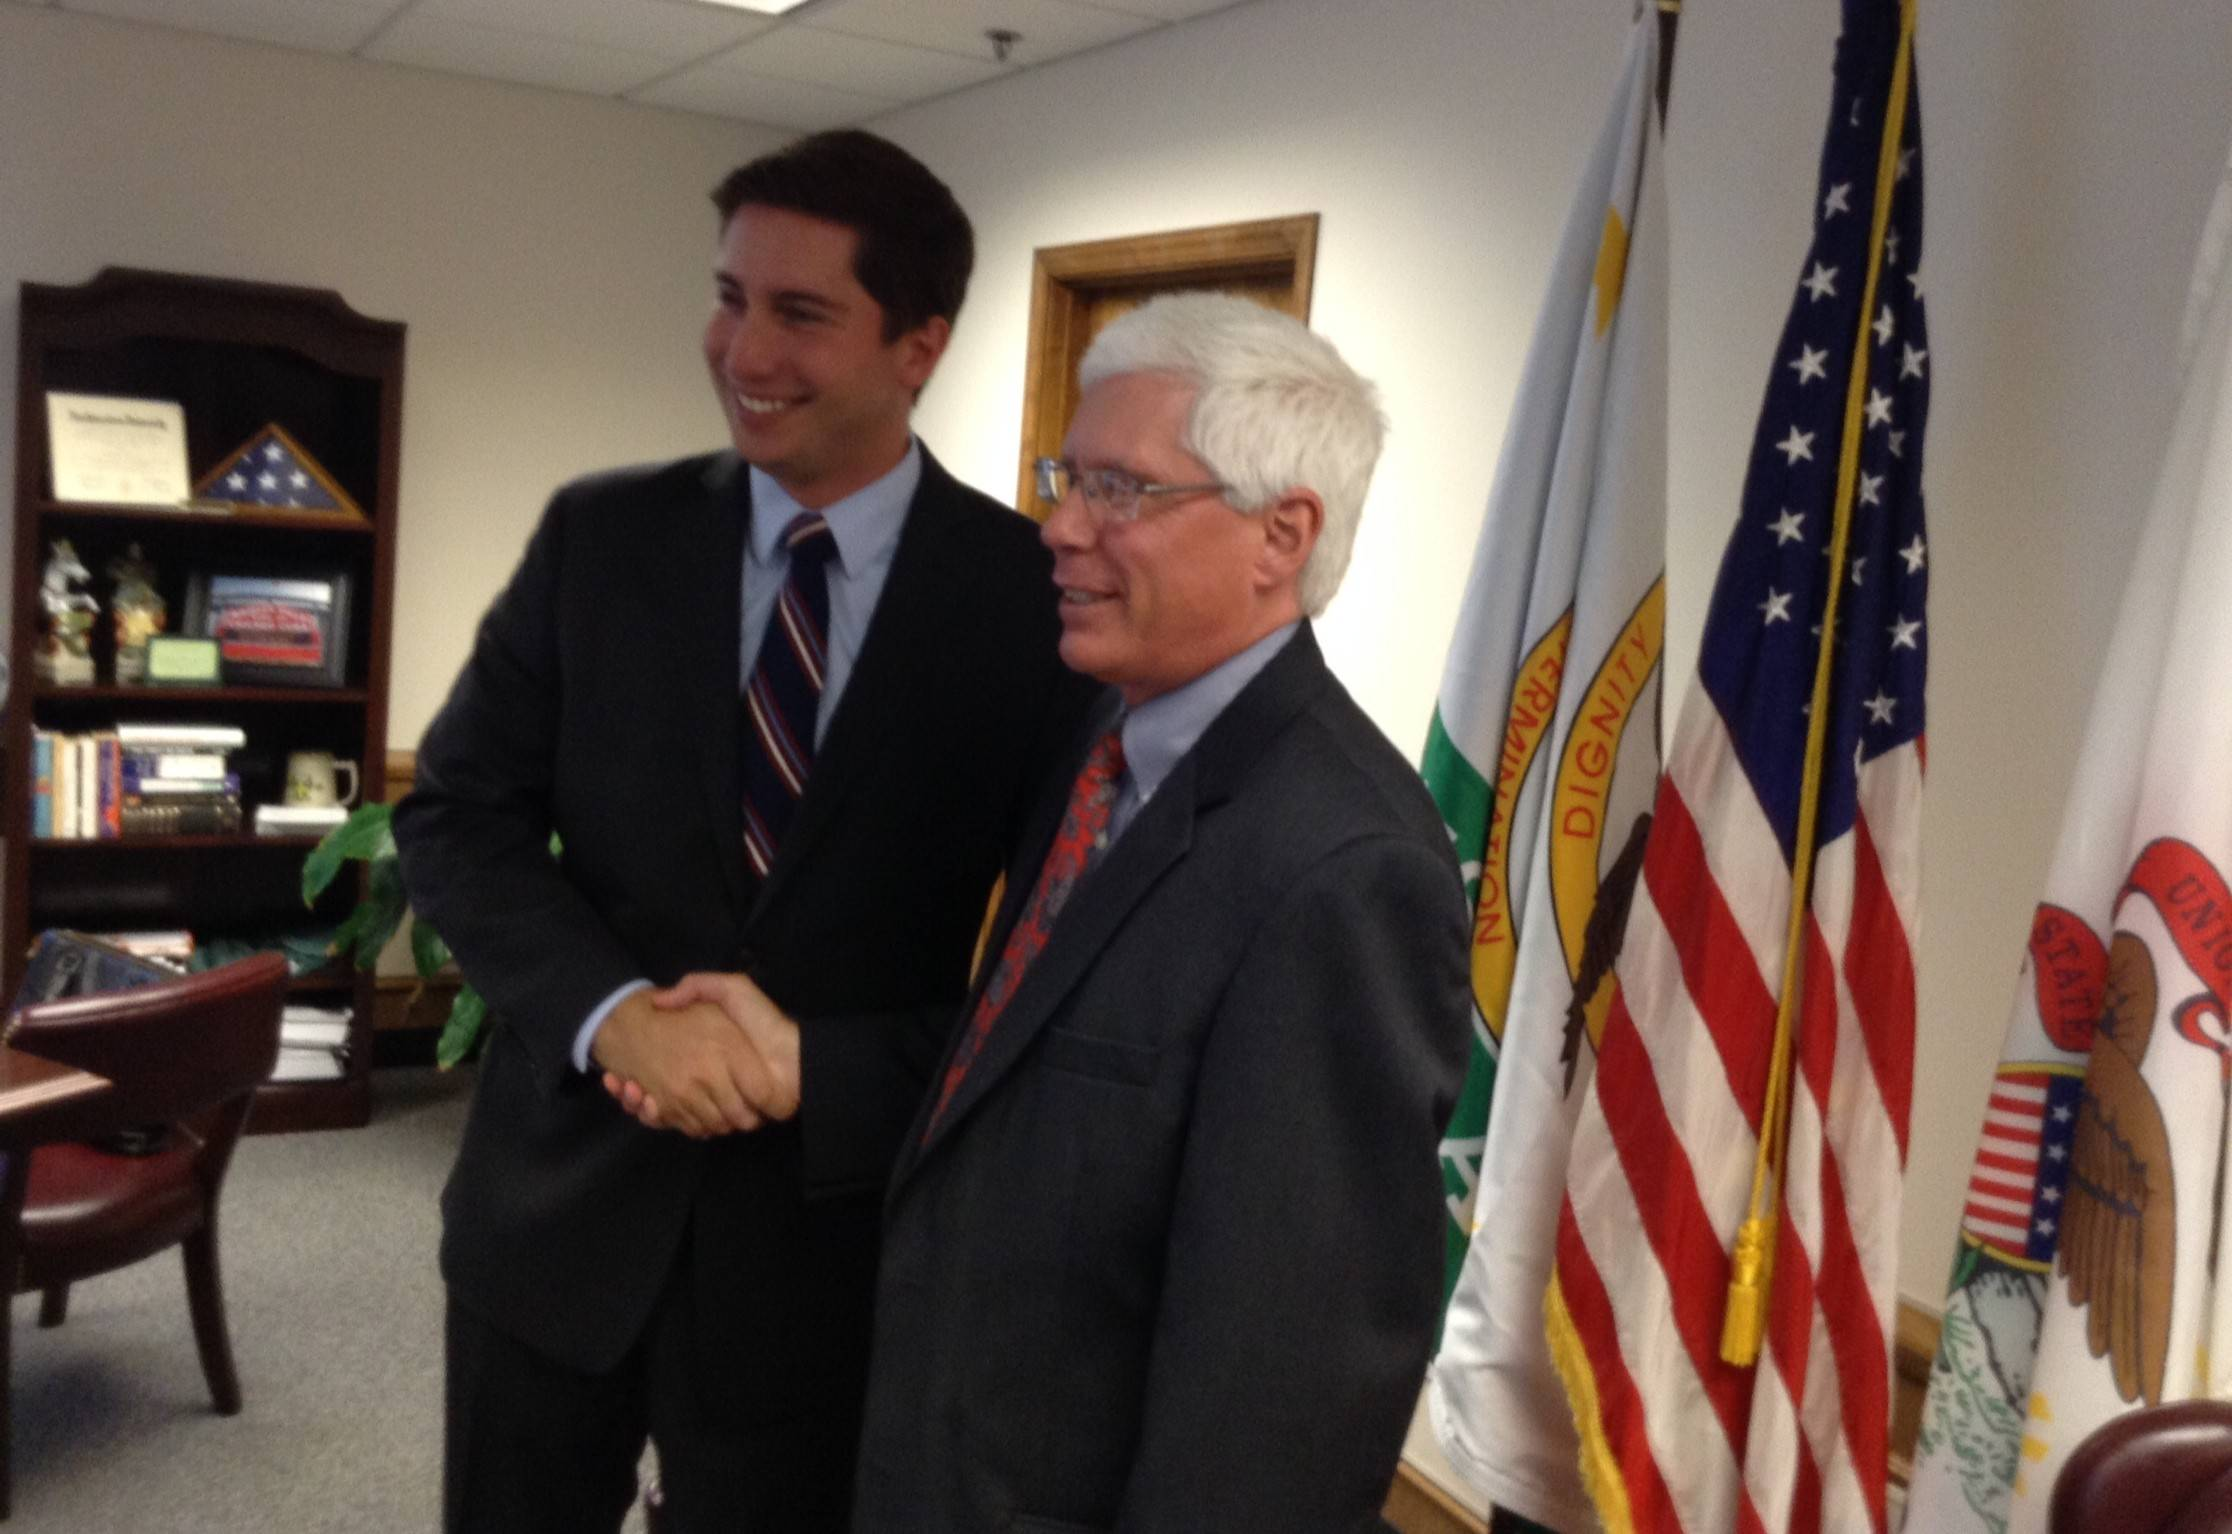 Bogusz appoints former alderman to replace Sojka on Des Plaines council